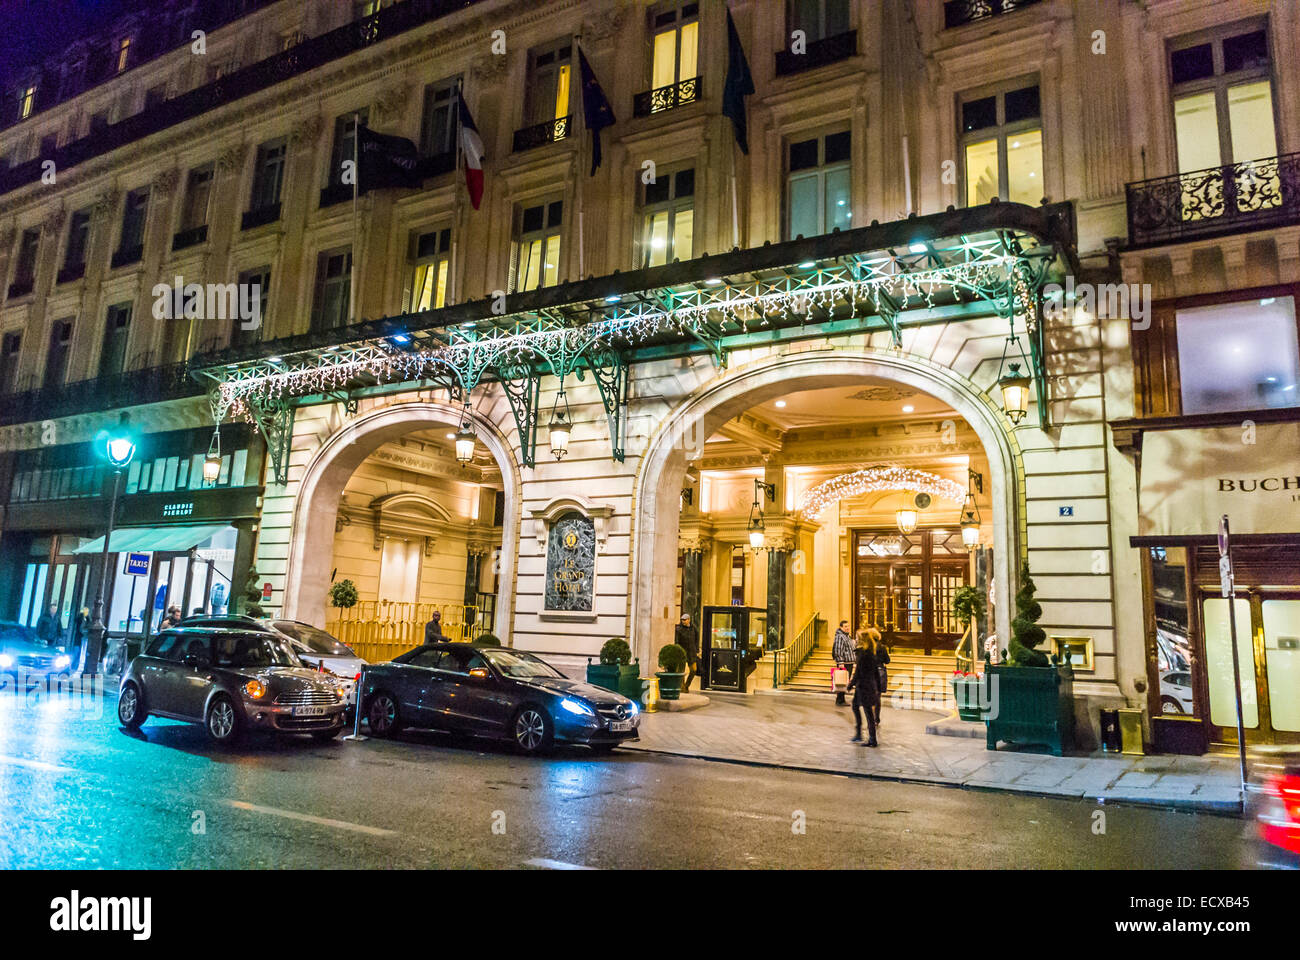 Paris France Luxury Hotel Front Outside Street Scenes At Night